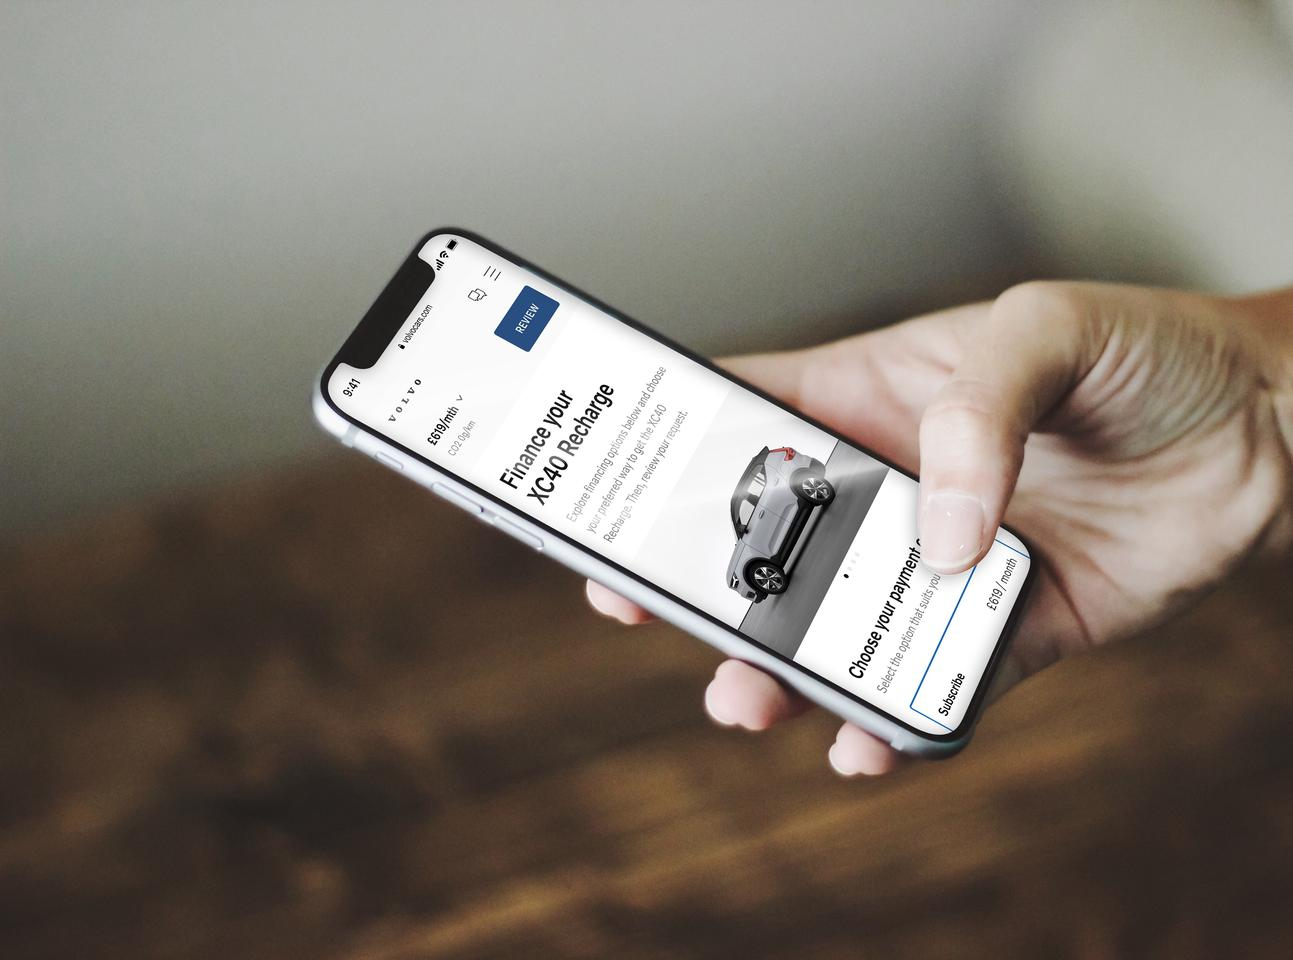 Volvo will be rolling out an updated Care by Volvo app that includes online sales for EVs like the C40 Recharge